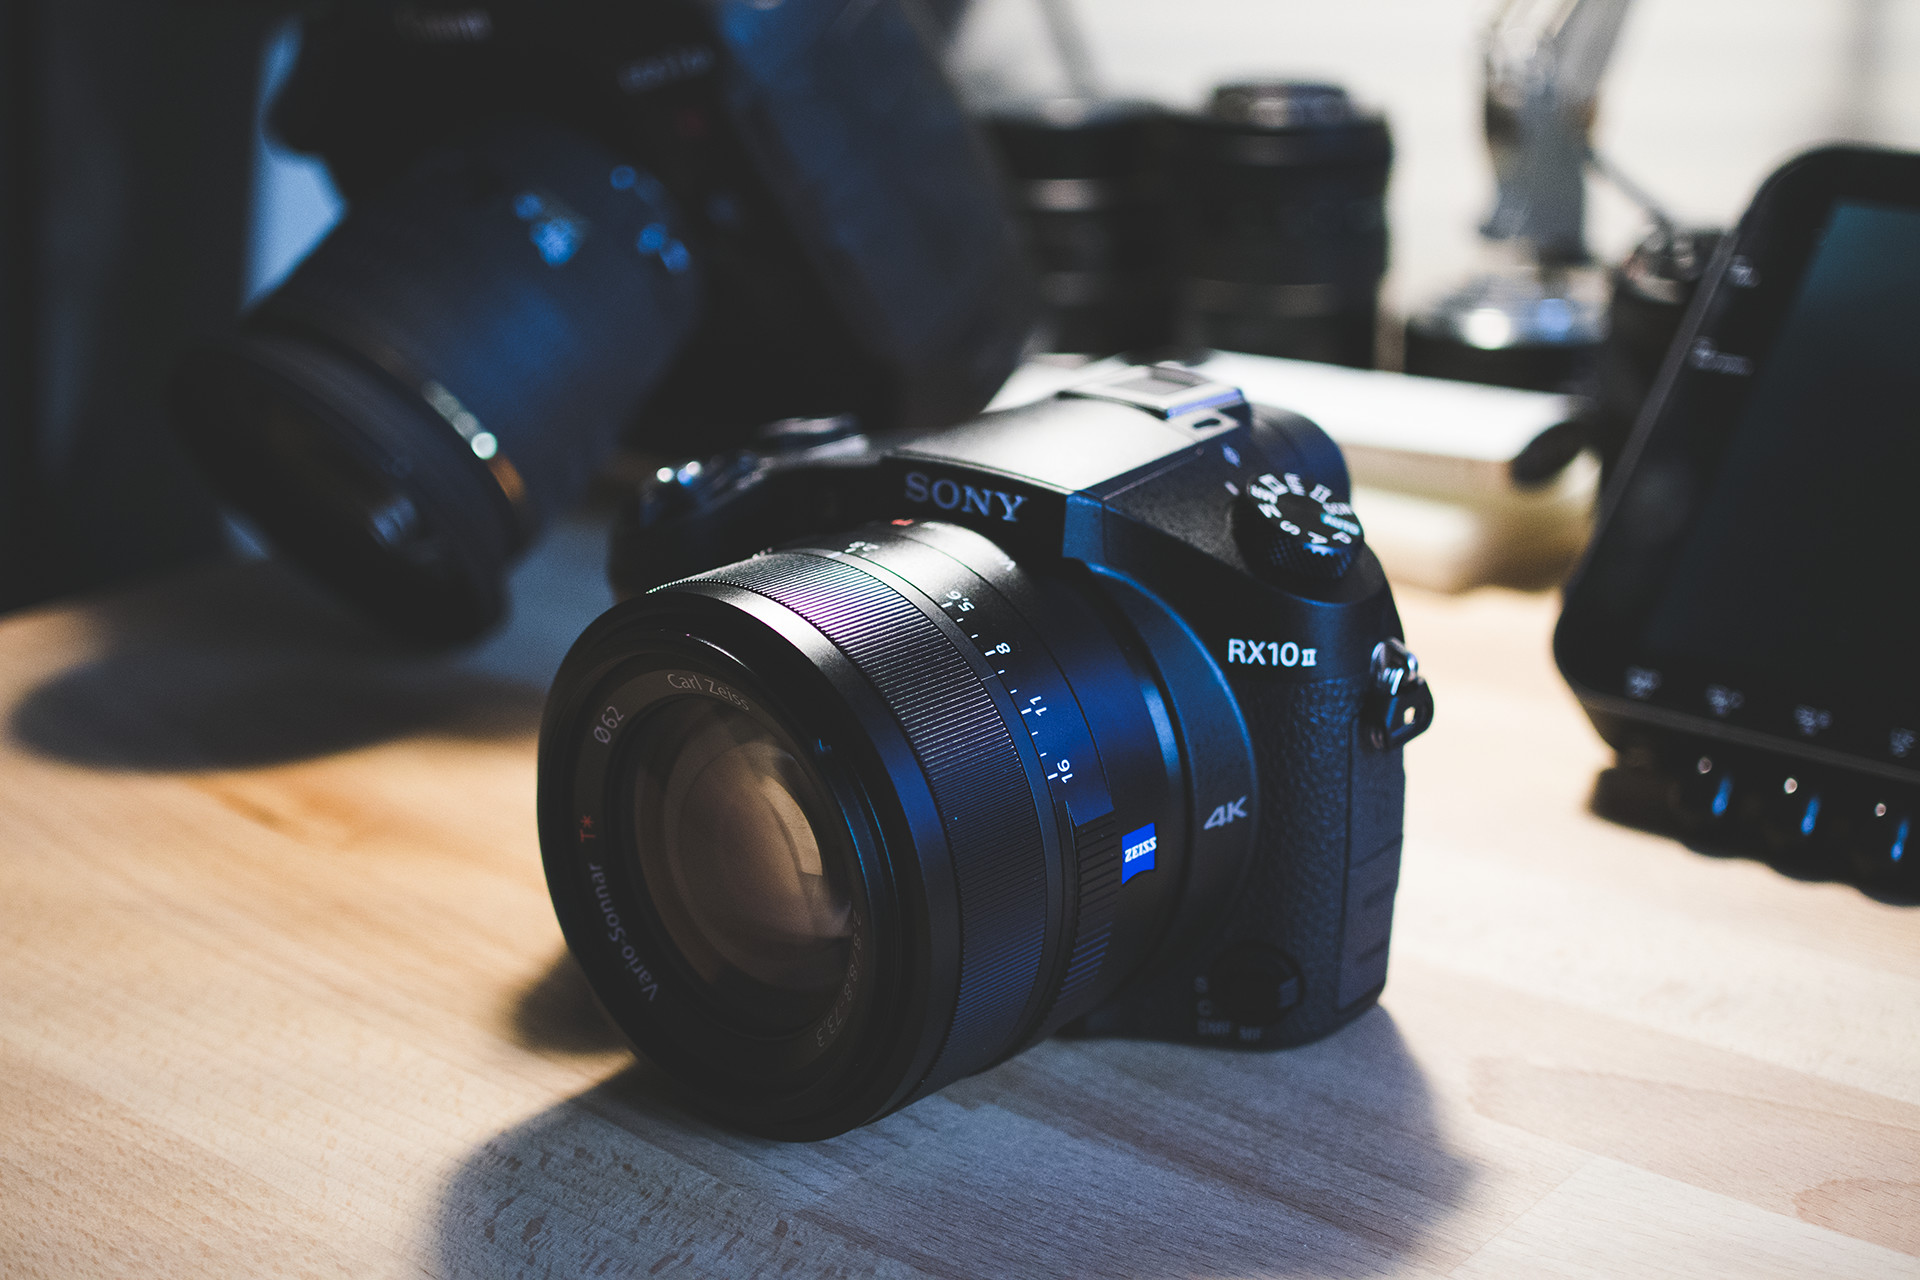 Sony RX10 II review final conclusion and introduction to its smaller